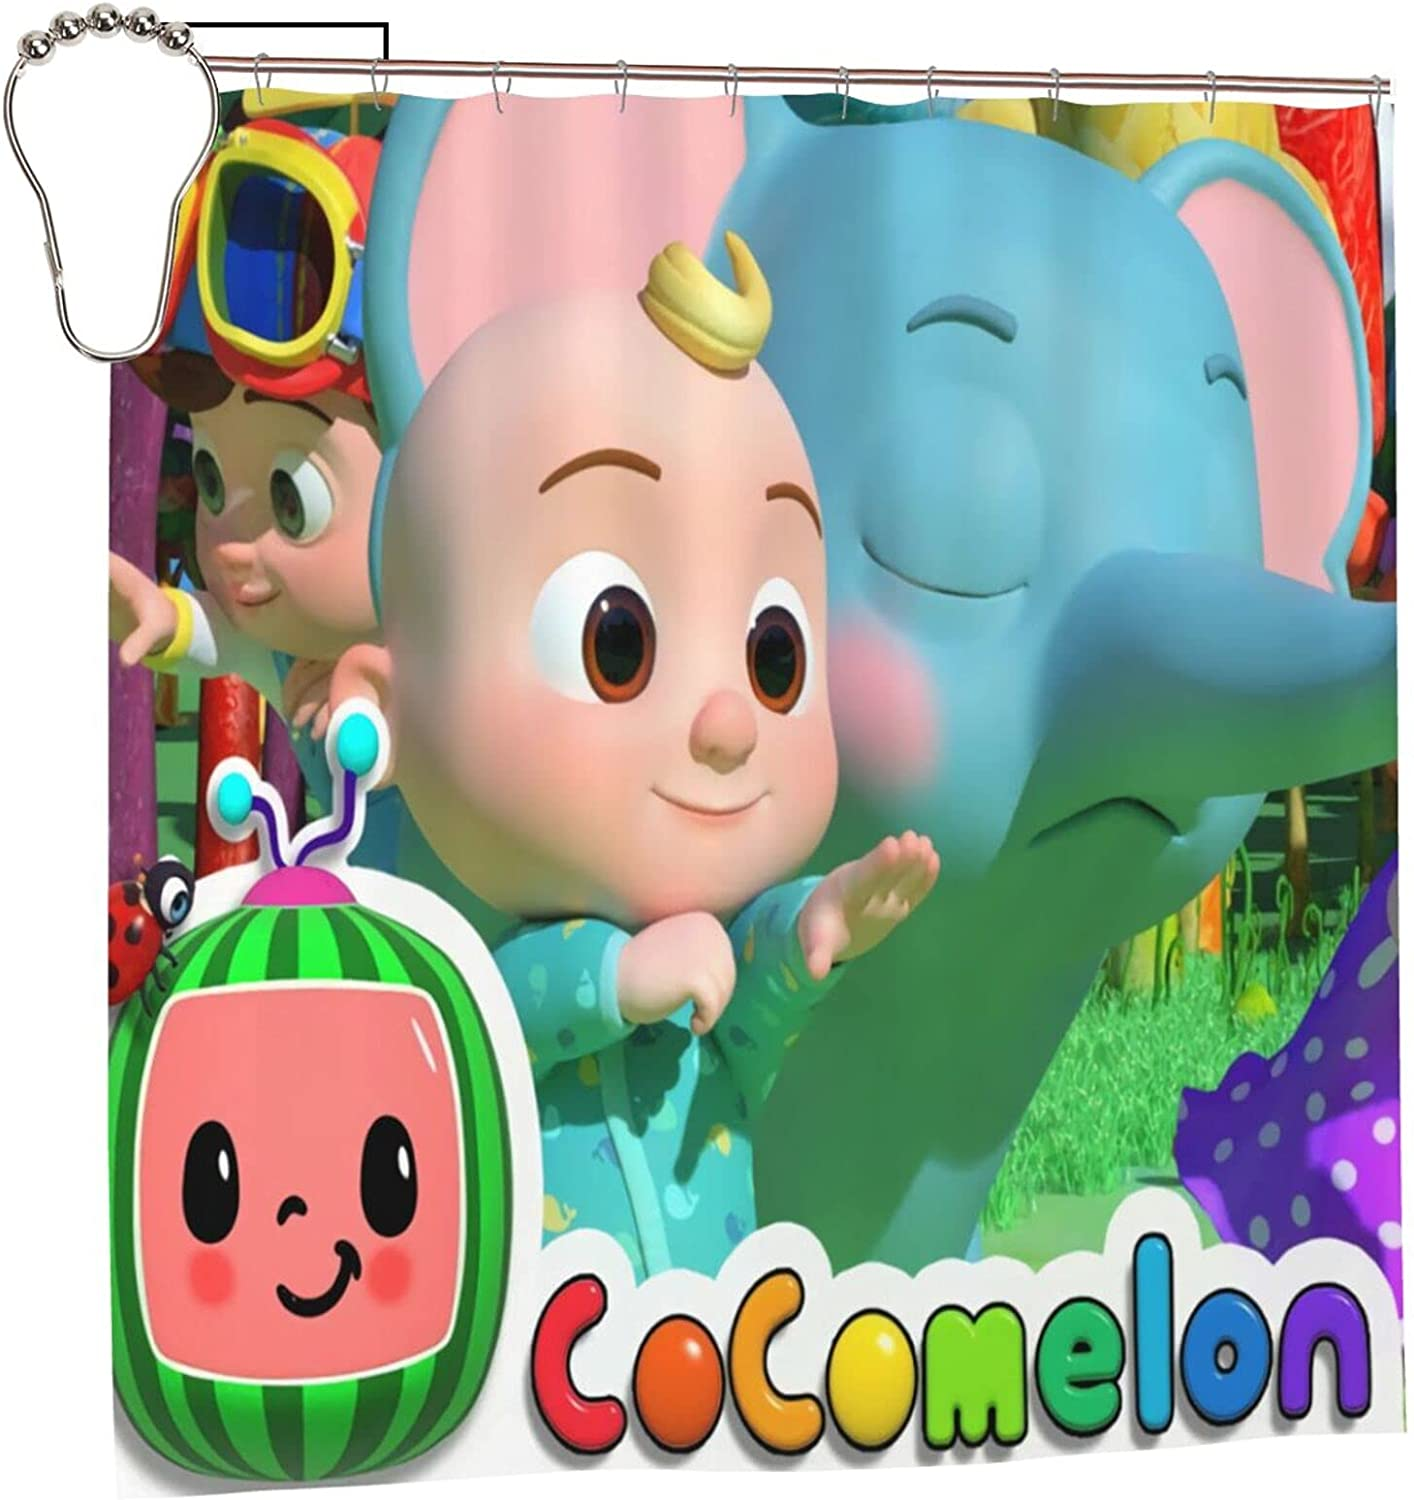 Coco-Melon Max All items free shipping 51% OFF Kids Shower Curtain Decoration Interesting Bathroom